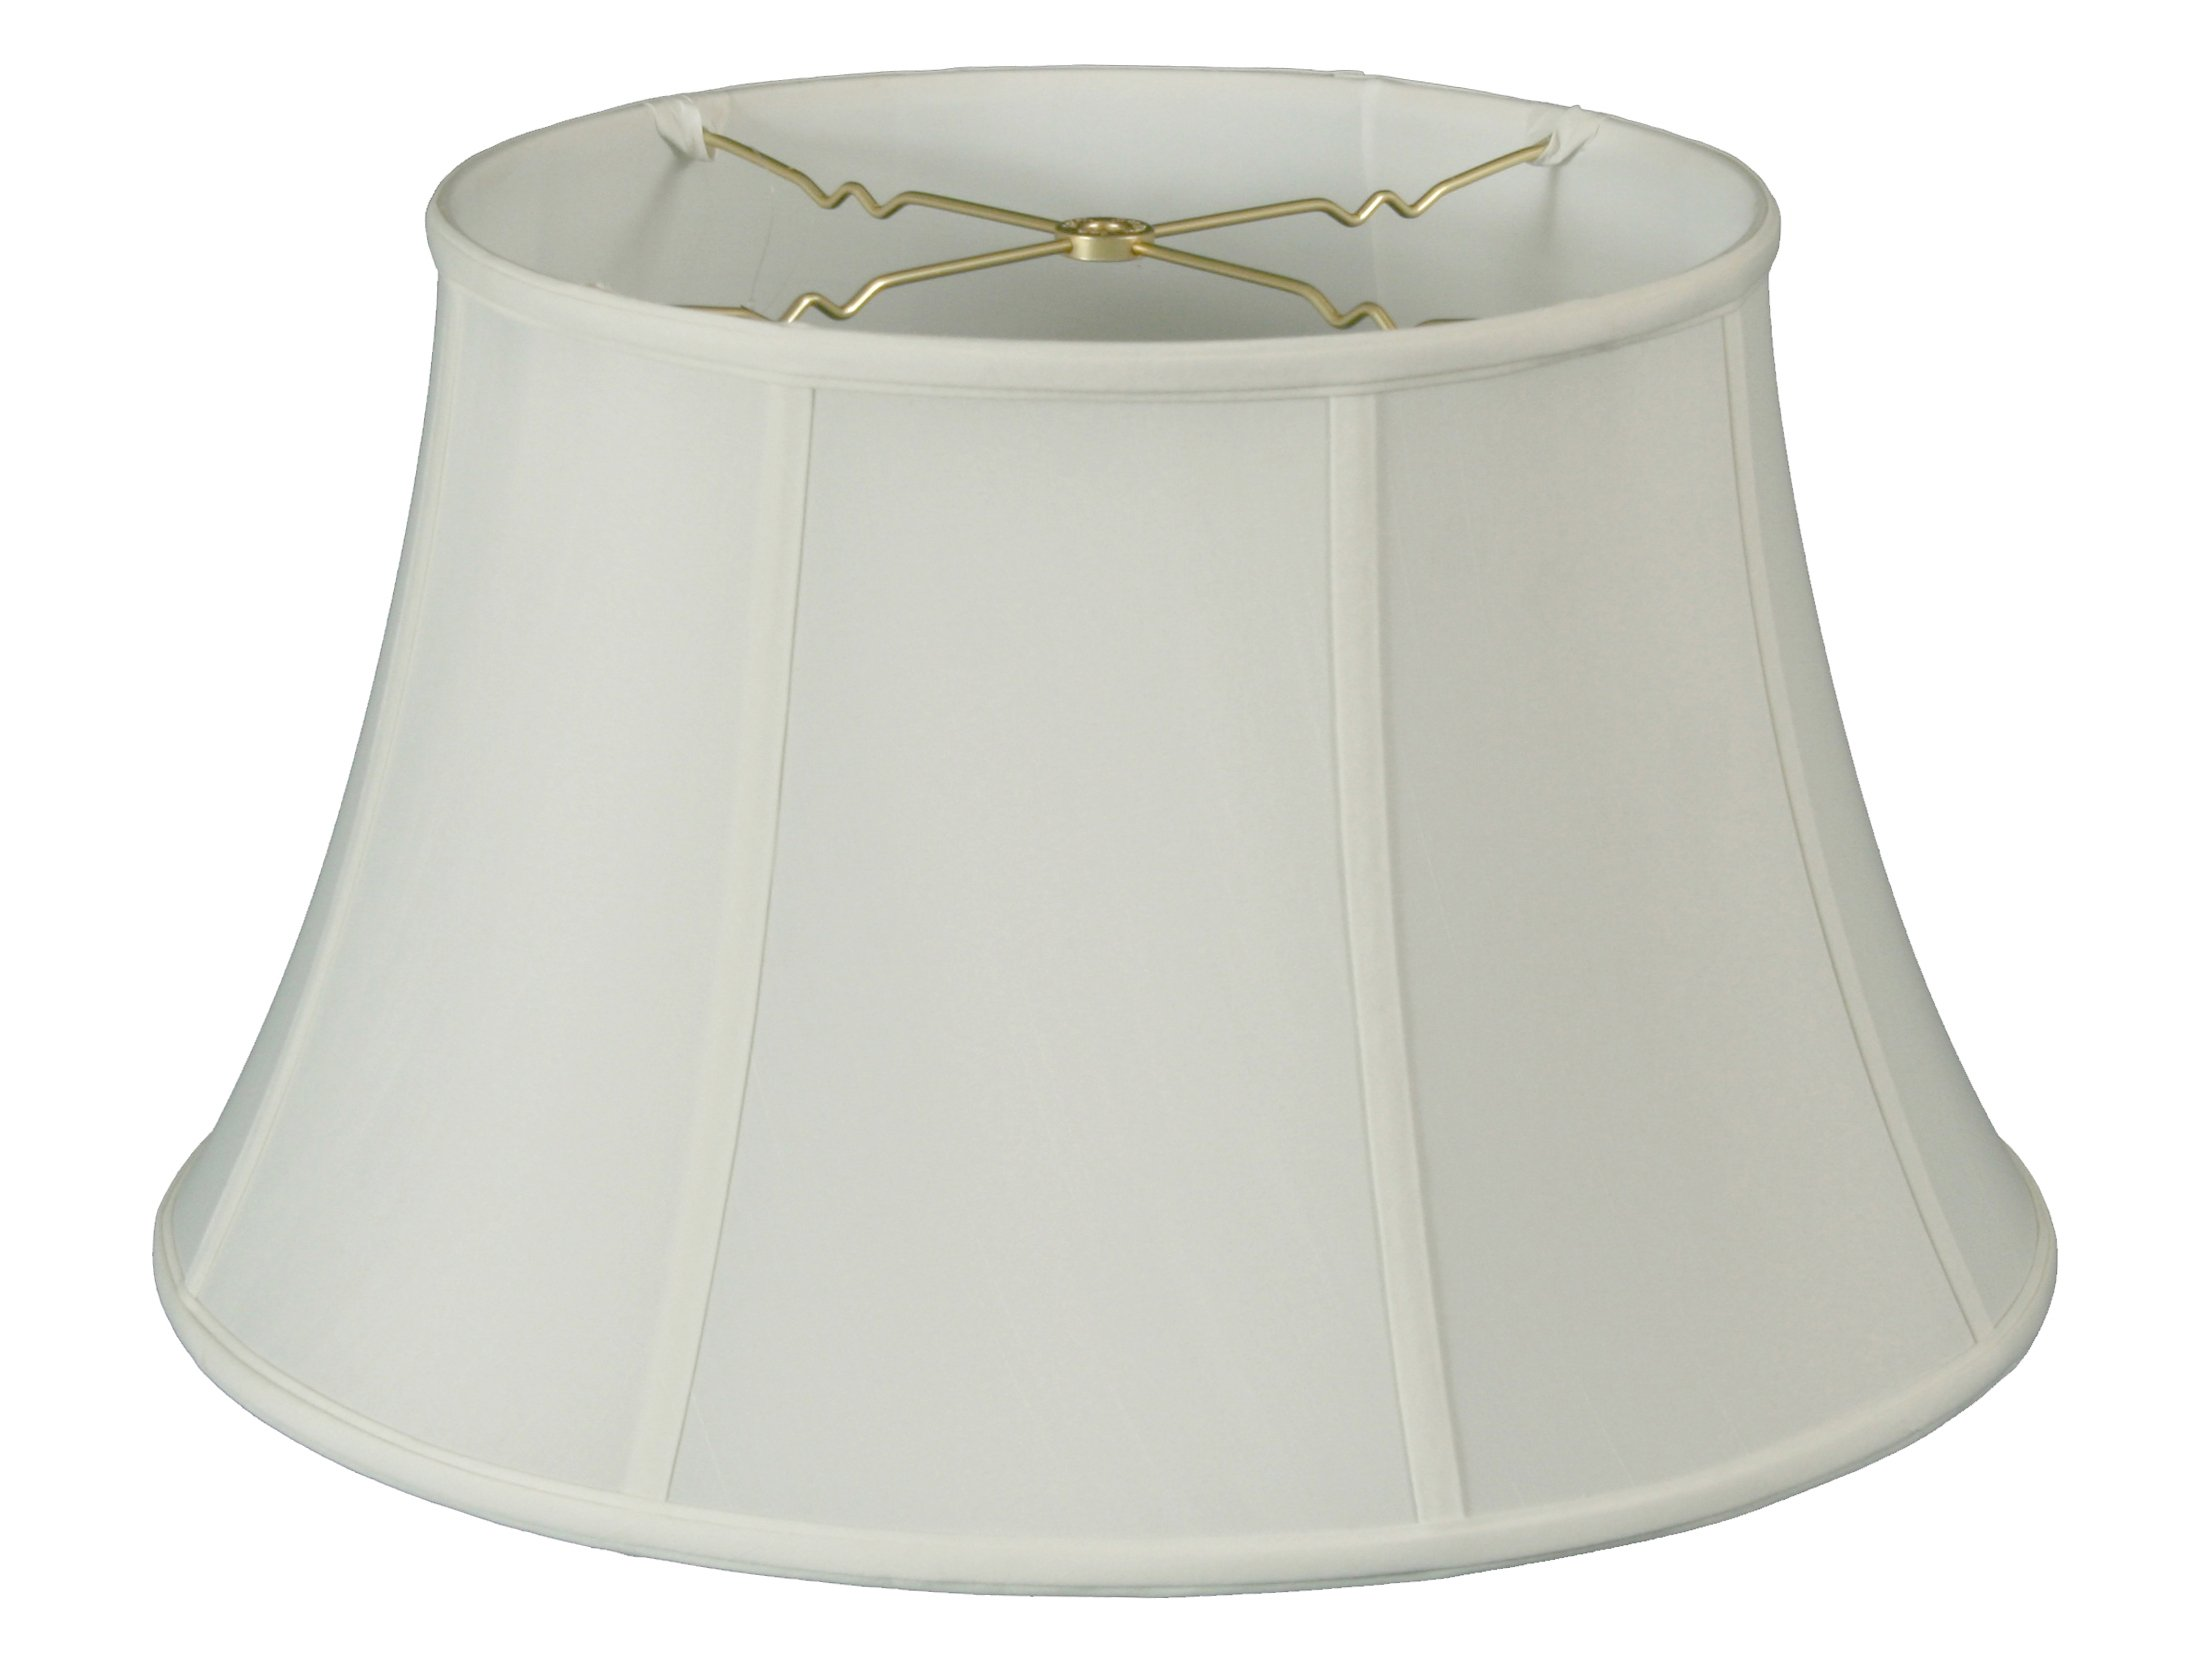 Royal Designs Shallow Drum Bell Billiotte Wall Lamp Shade - White - 8 x 12.5 x 7.6